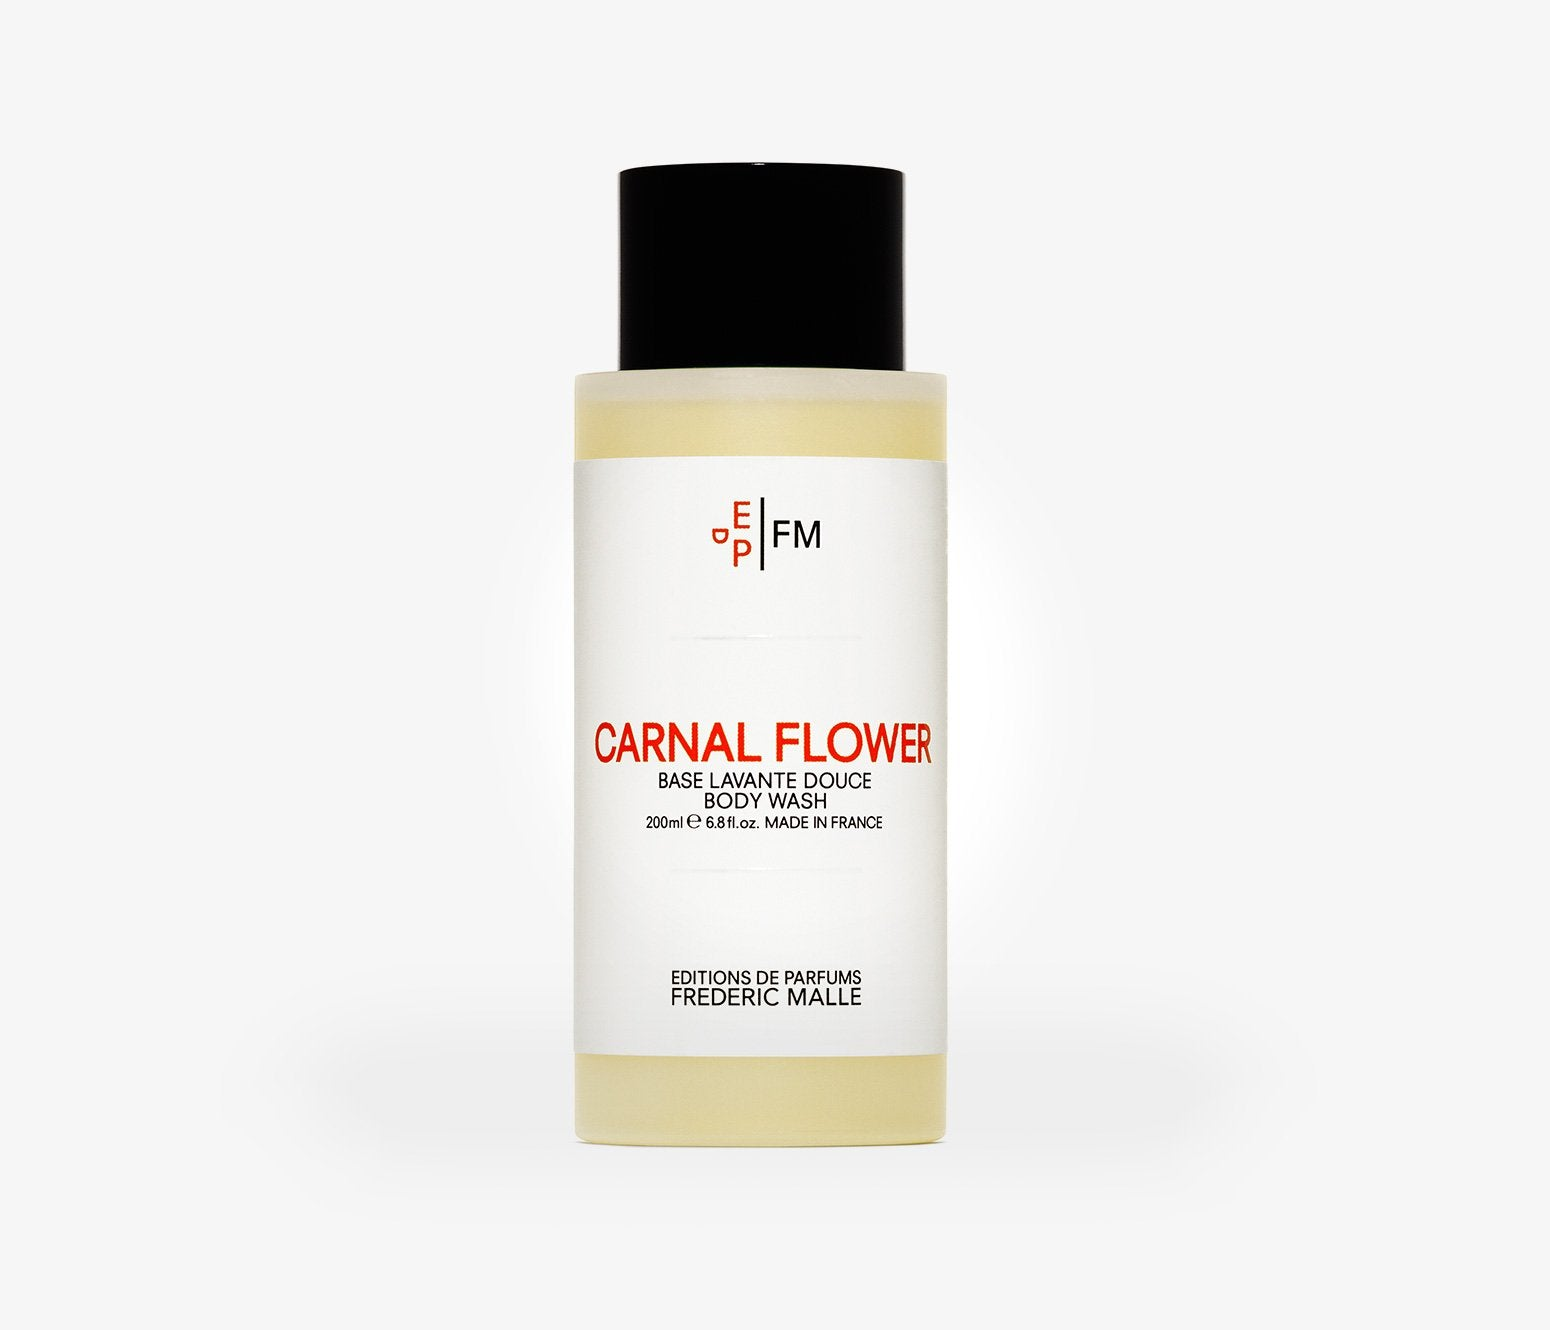 Frederic Malle - Carnal Flower Body Wash